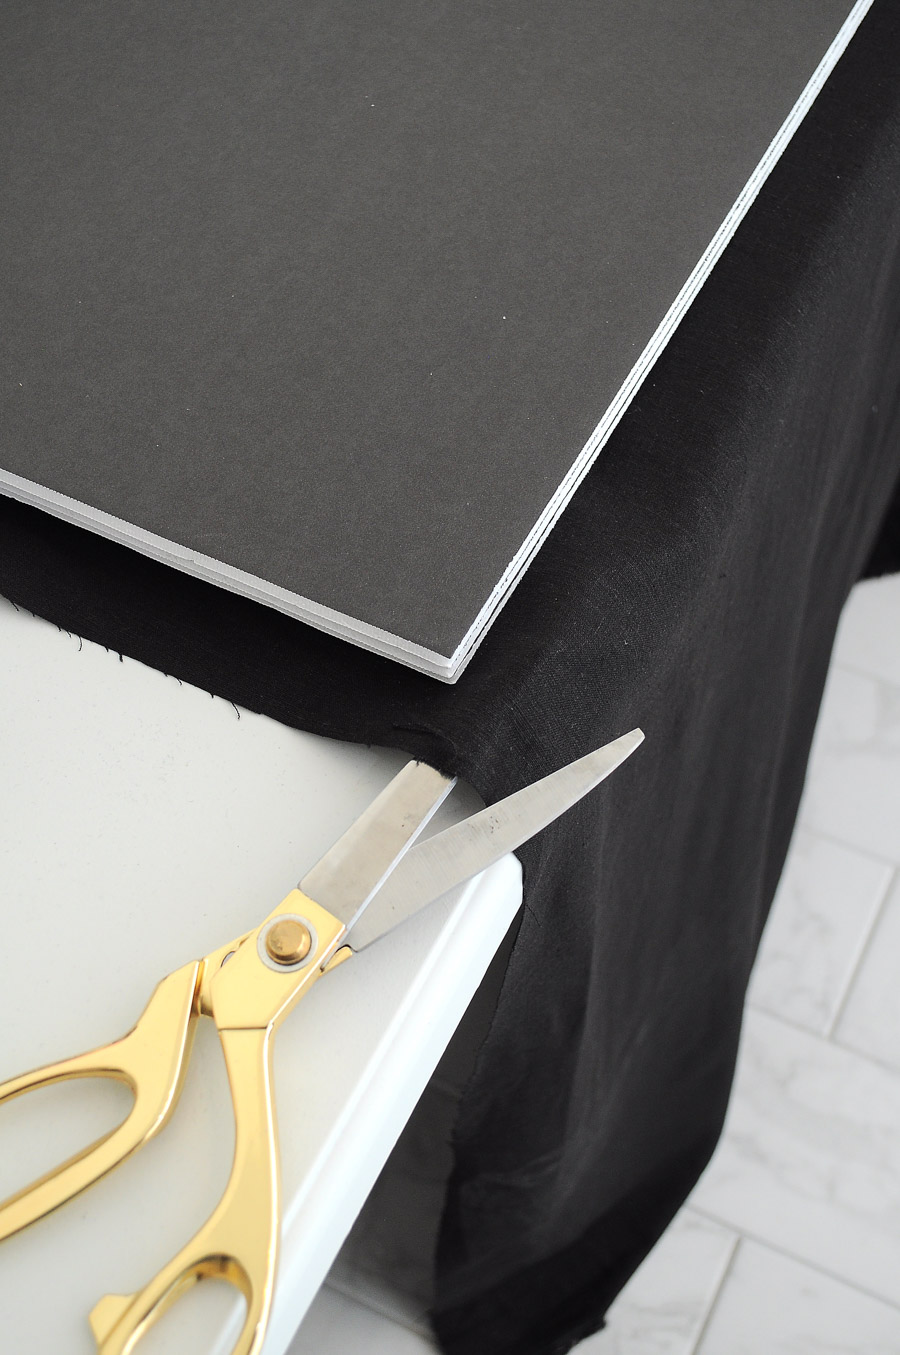 DIY tutorial for creating a chic and functional black linen & gold memo board using items found at the dollar store. Such a genius idea!